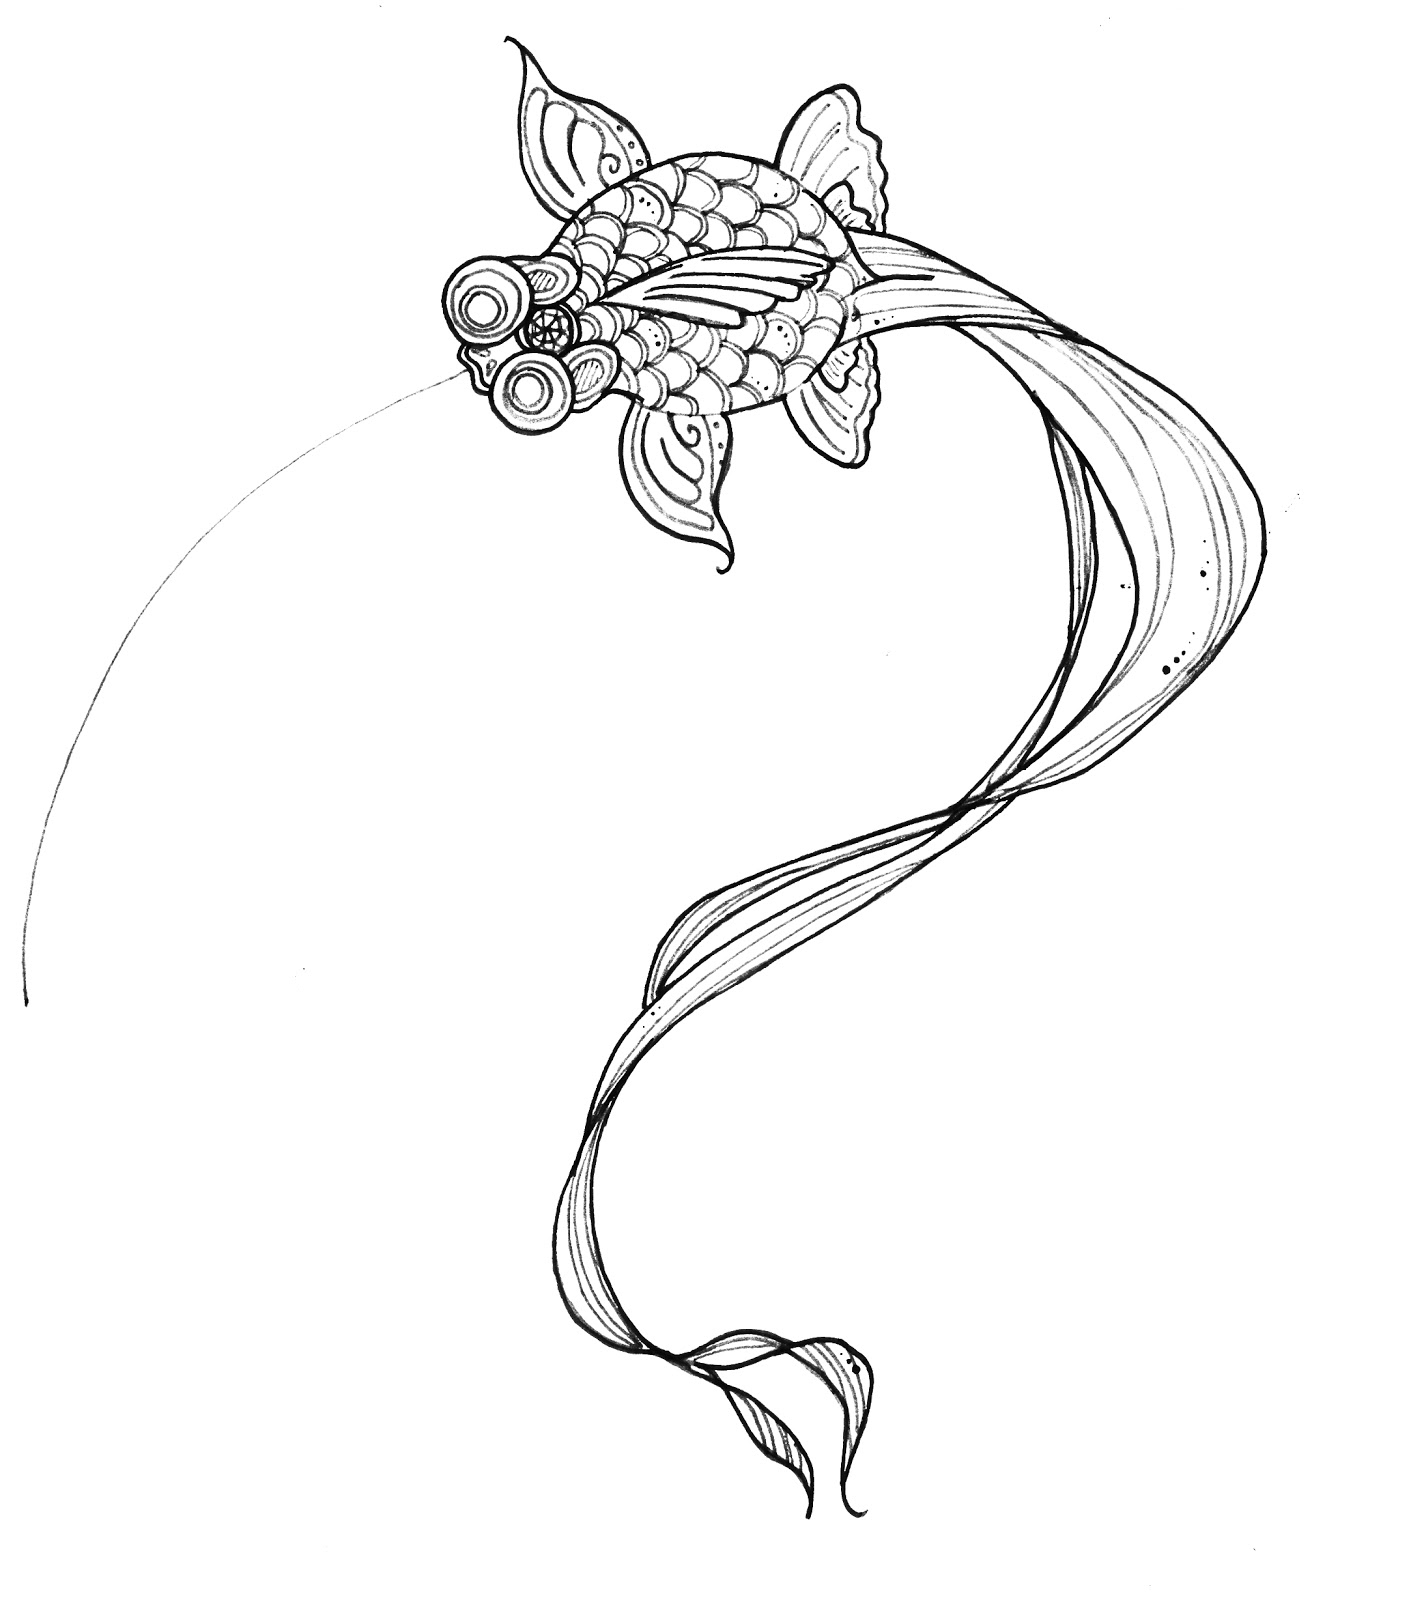 emillustration chinese kites i did some initial sketches experimenting various forms and shapes of kite for both goldfish and magpies currently i am finalising one design that